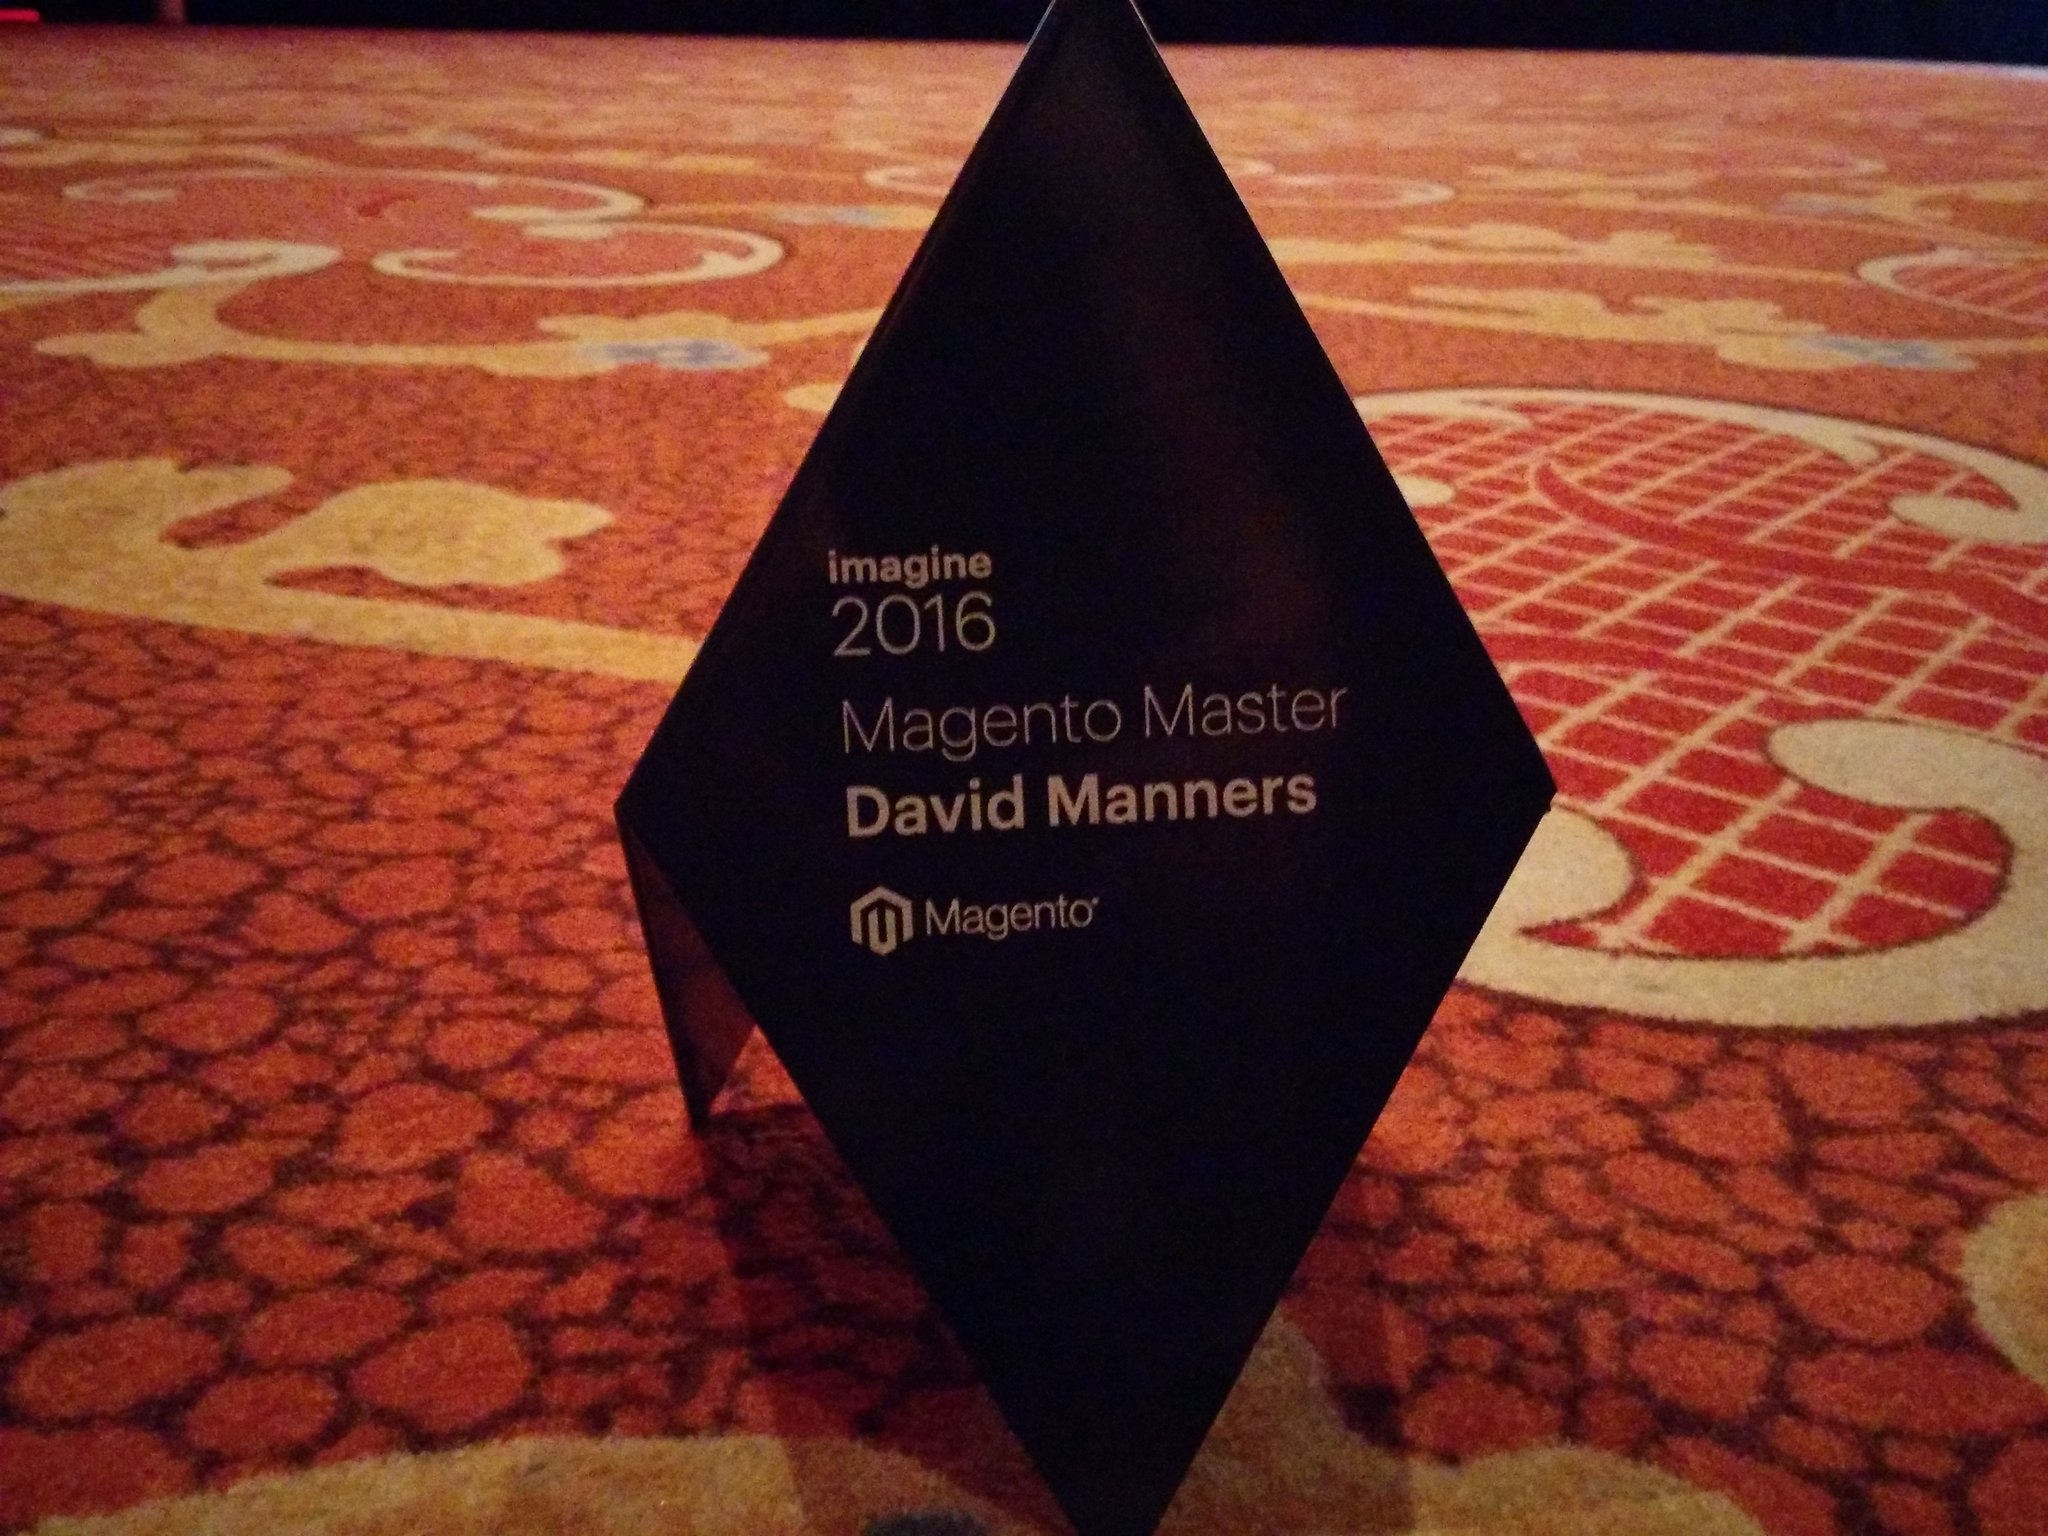 erickpatrick: Retweeted David Manners (@mannersd):nnVery cool thing. So happy for this #MagentoImagine https://t.co/3ubypVMtiK https://t.co/QpNj6l9zpL